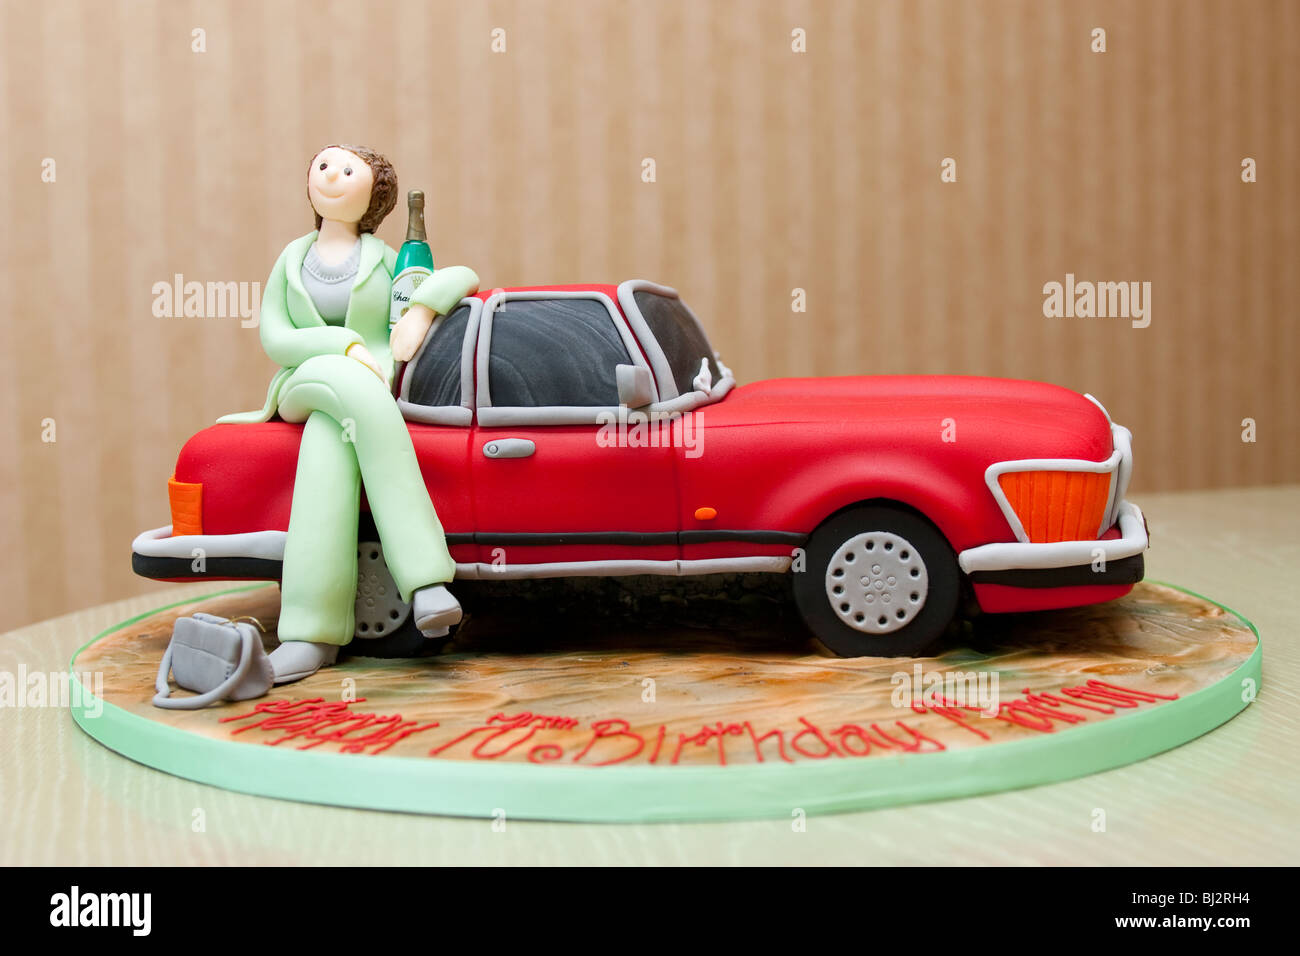 Car Cake Stock Photos Car Cake Stock Images Alamy